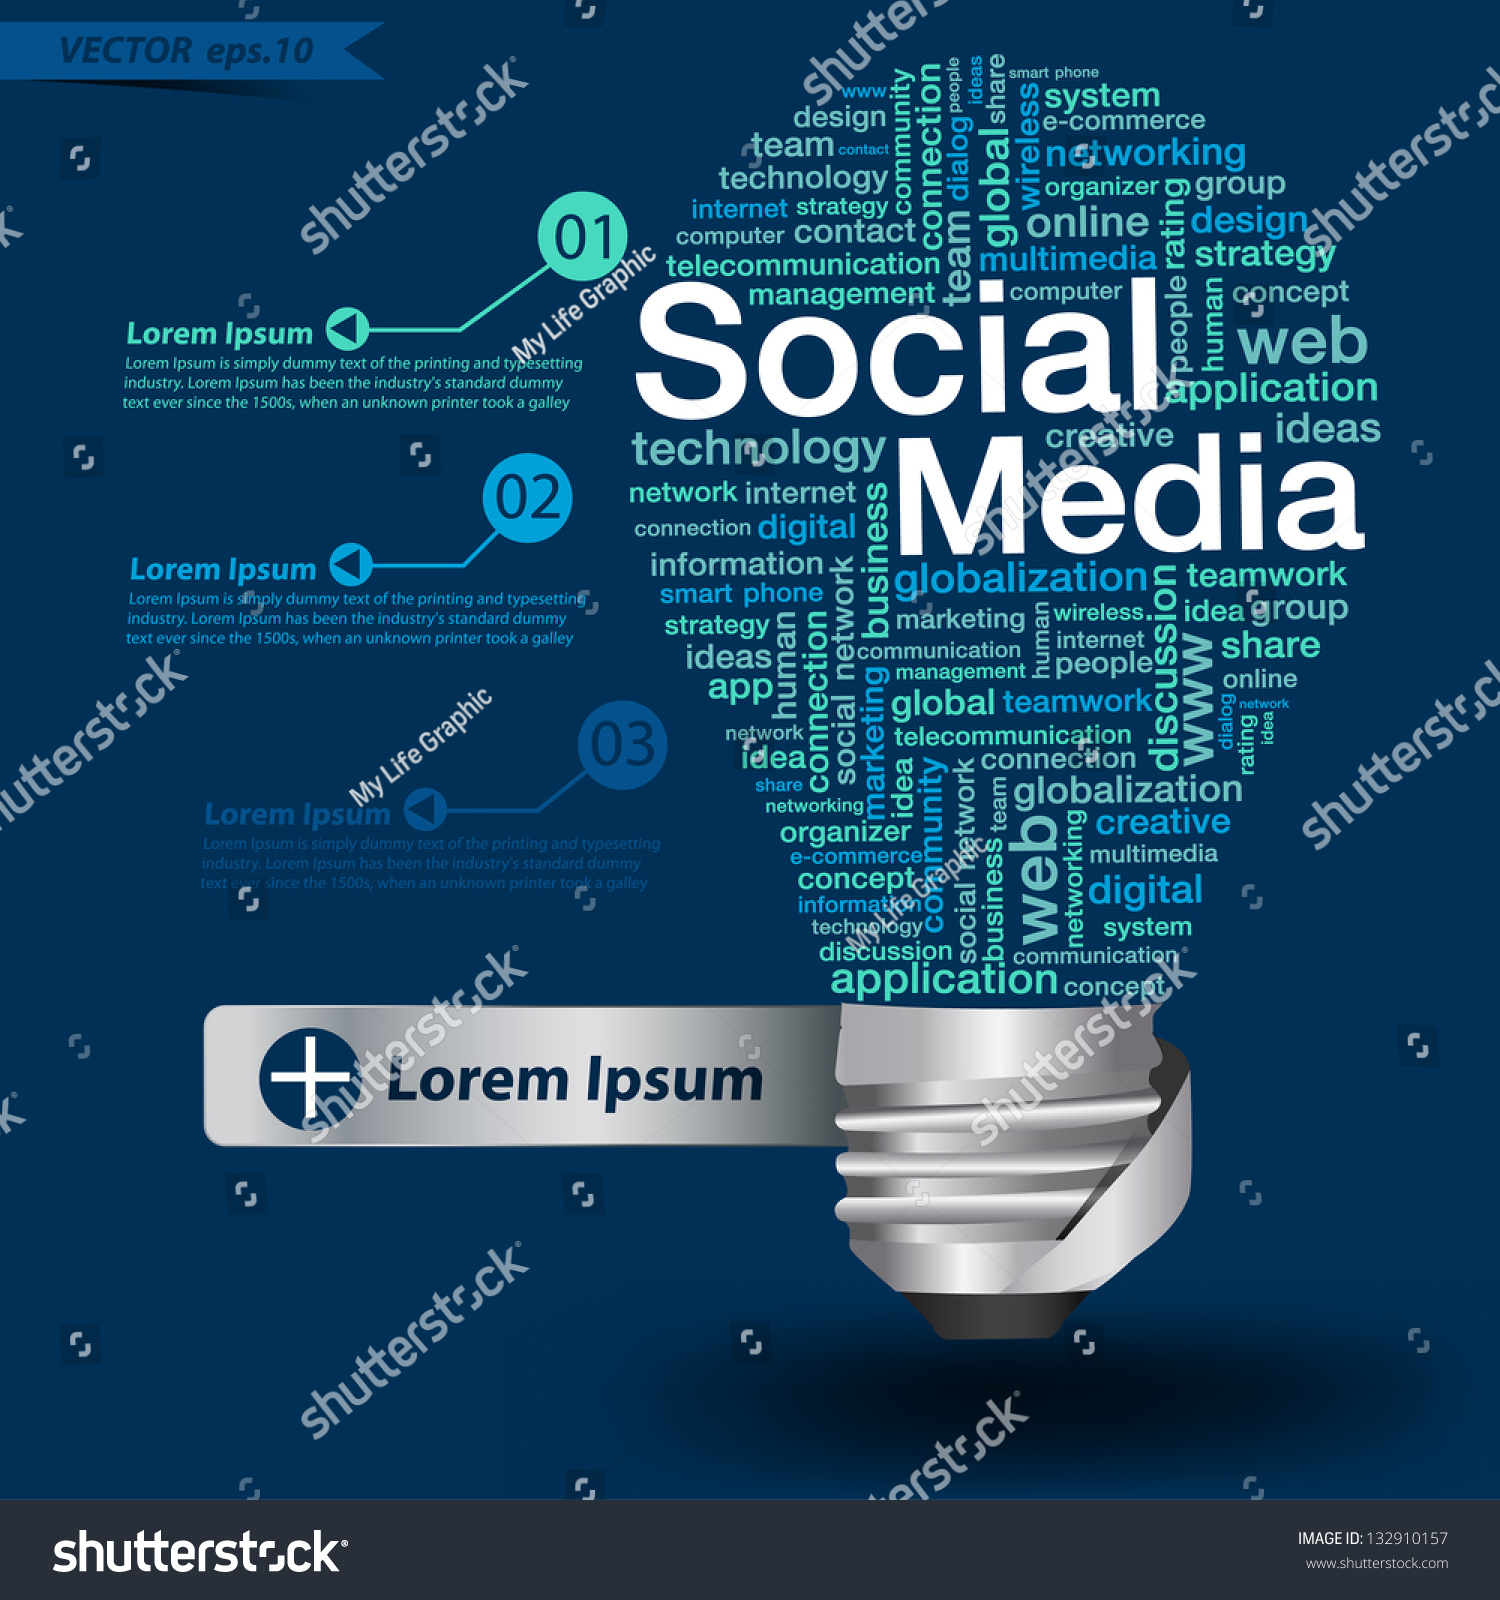 creative light bulb social media concept stock vector  creative light bulb social media concept of word cloud vector illustration modern template design